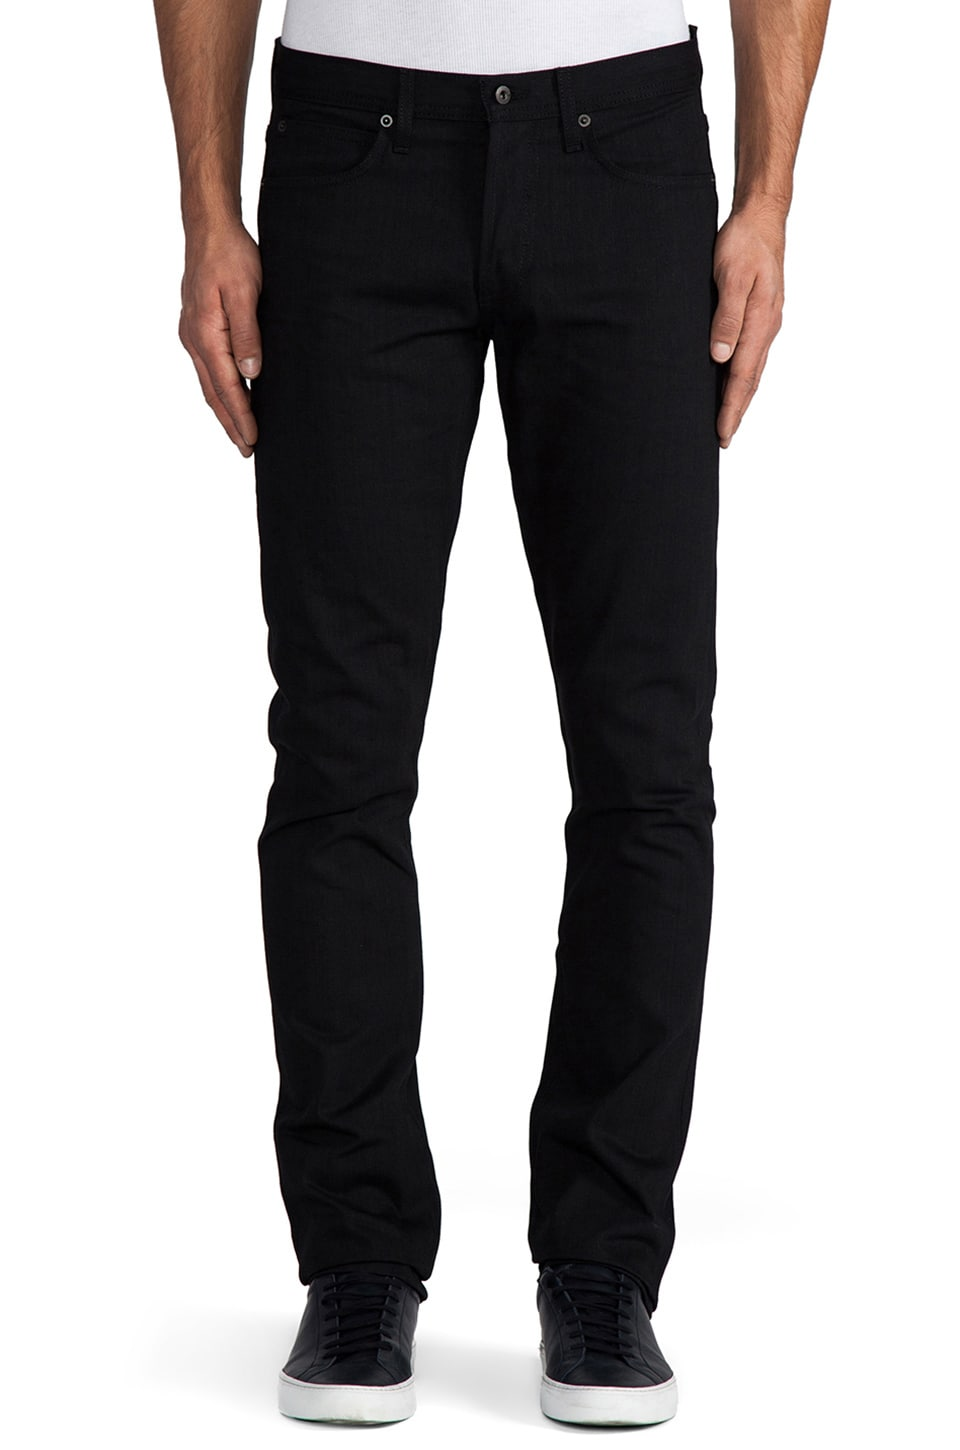 United Stock Dry Goods Slight Tonal Stitch in Black